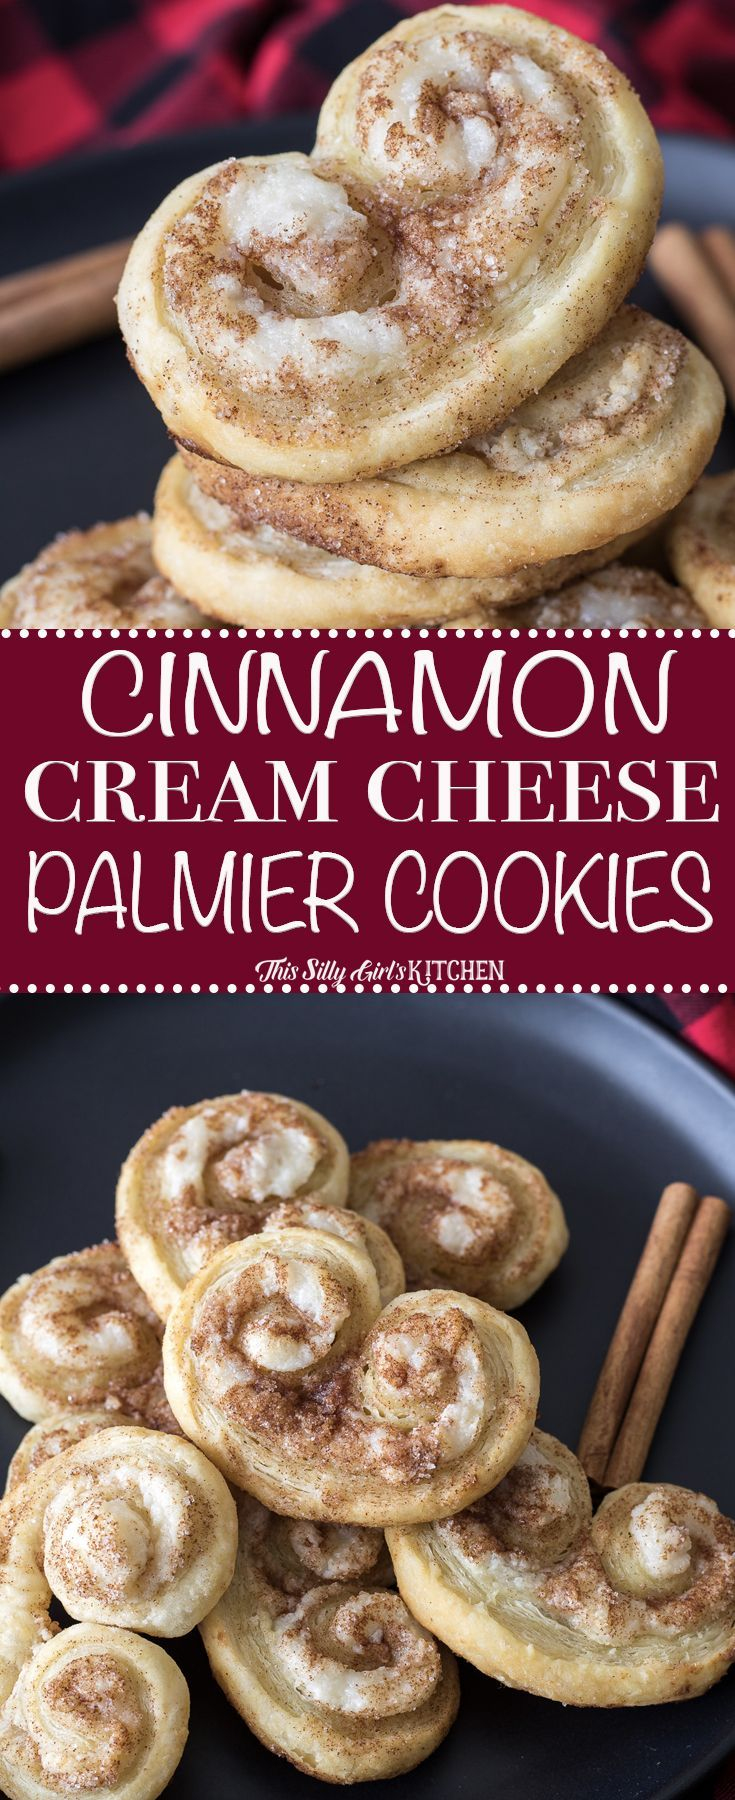 SO EASY! Cinnamon Cream Cheese Palmier Cookies. Puff pastry, sweetened cream cheese, and cinnamon sugar baked to golden brown deliciousness!